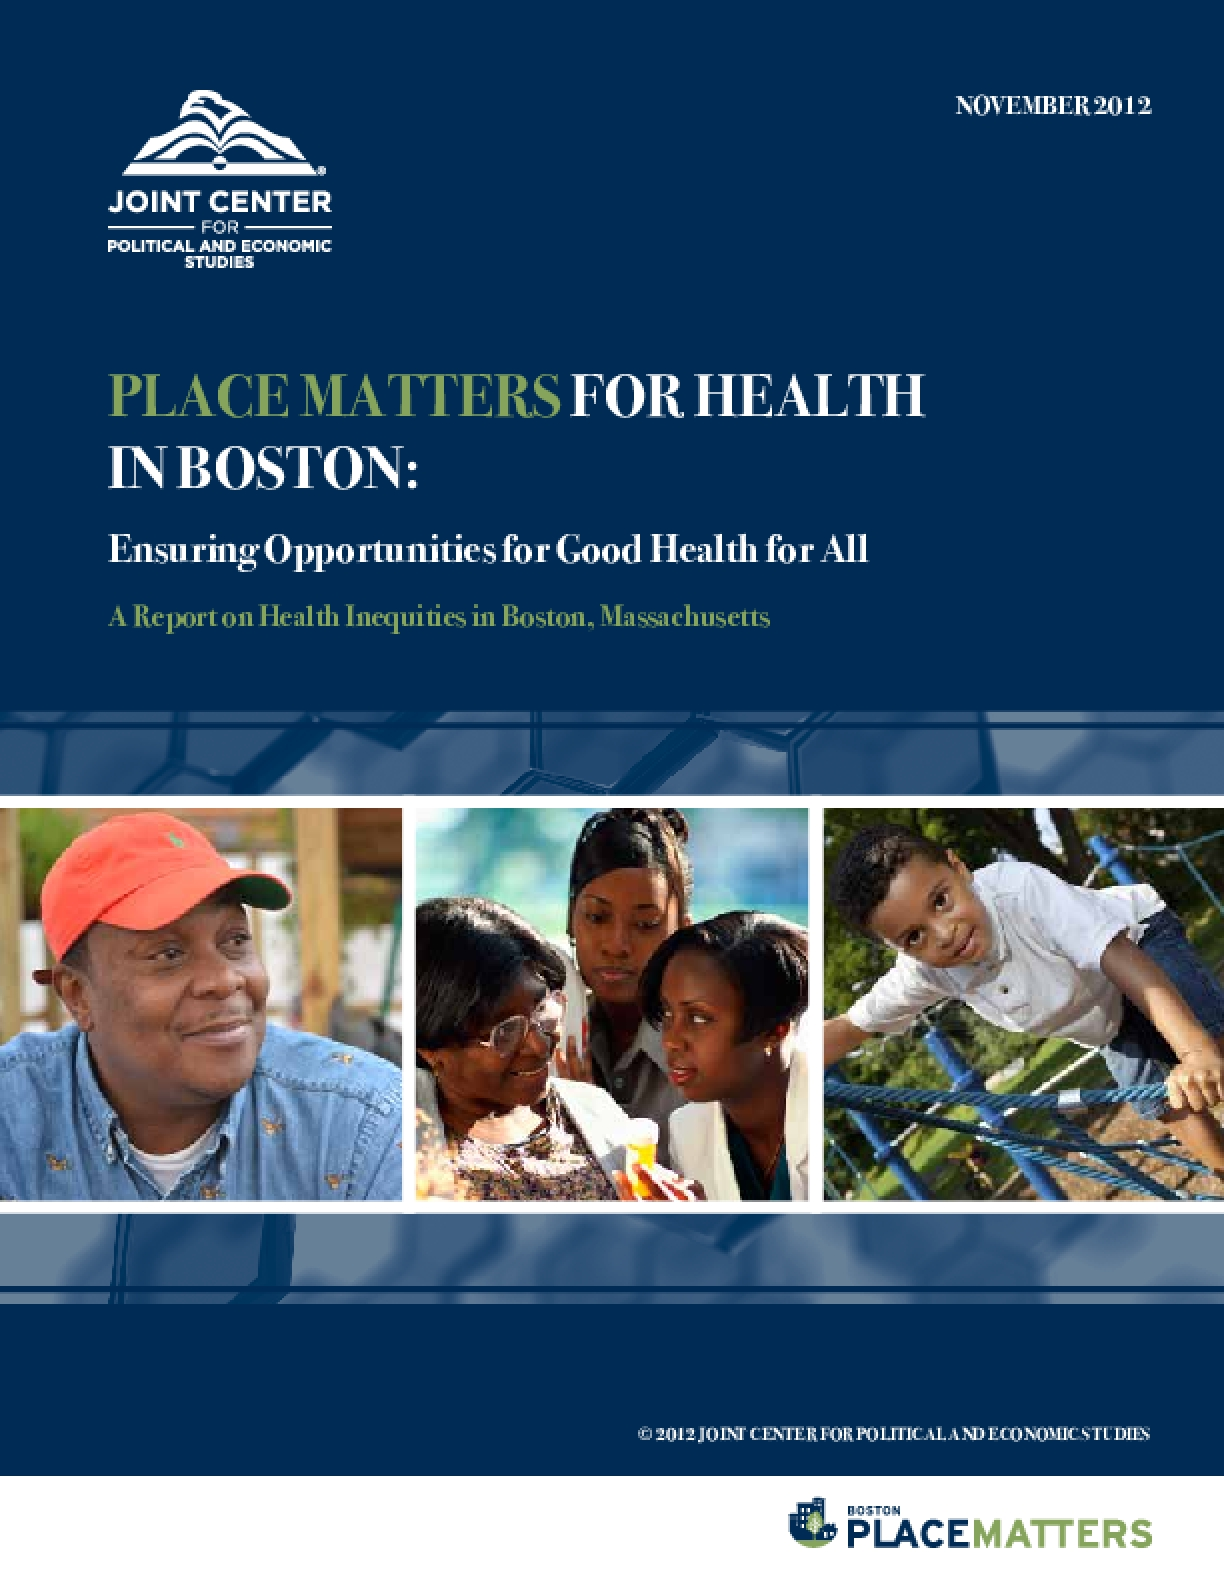 Place Matters for Health in Boston: Ensuring Opportunities for Good Health for All, A Report on Health Inequities in Boston, Massachusetts